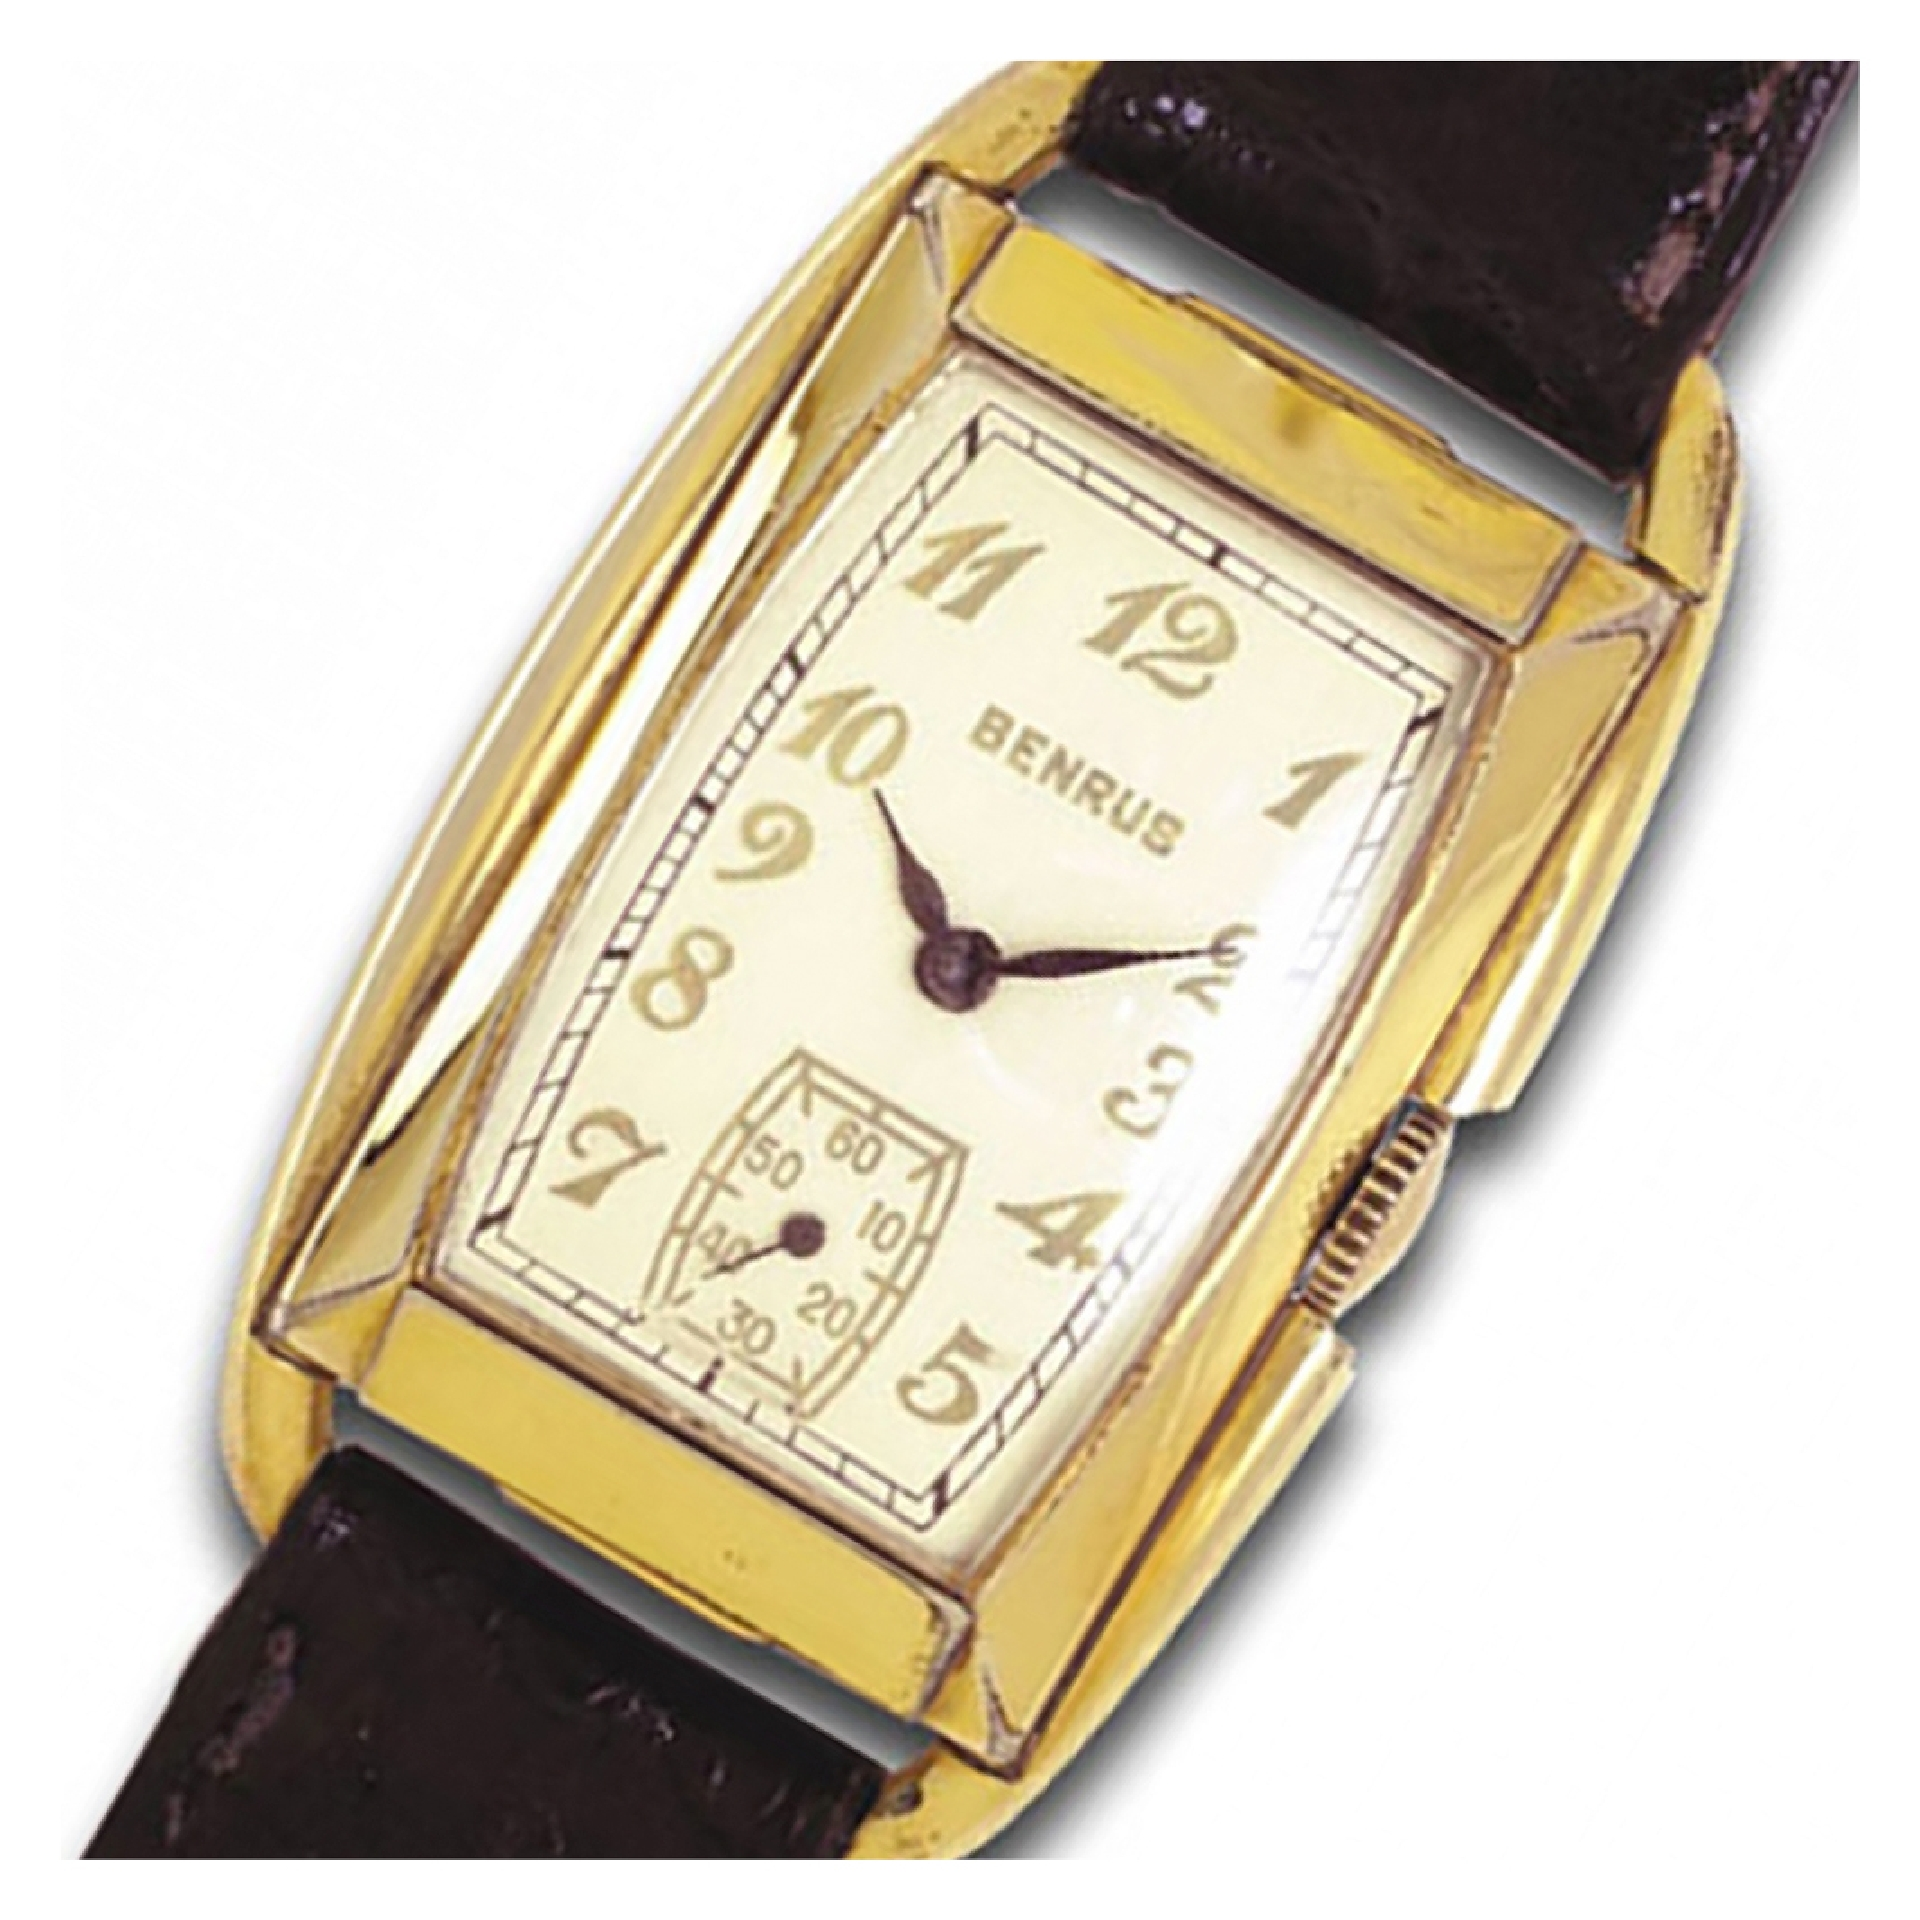 Vintage Benrus classic gold fill watch 1920